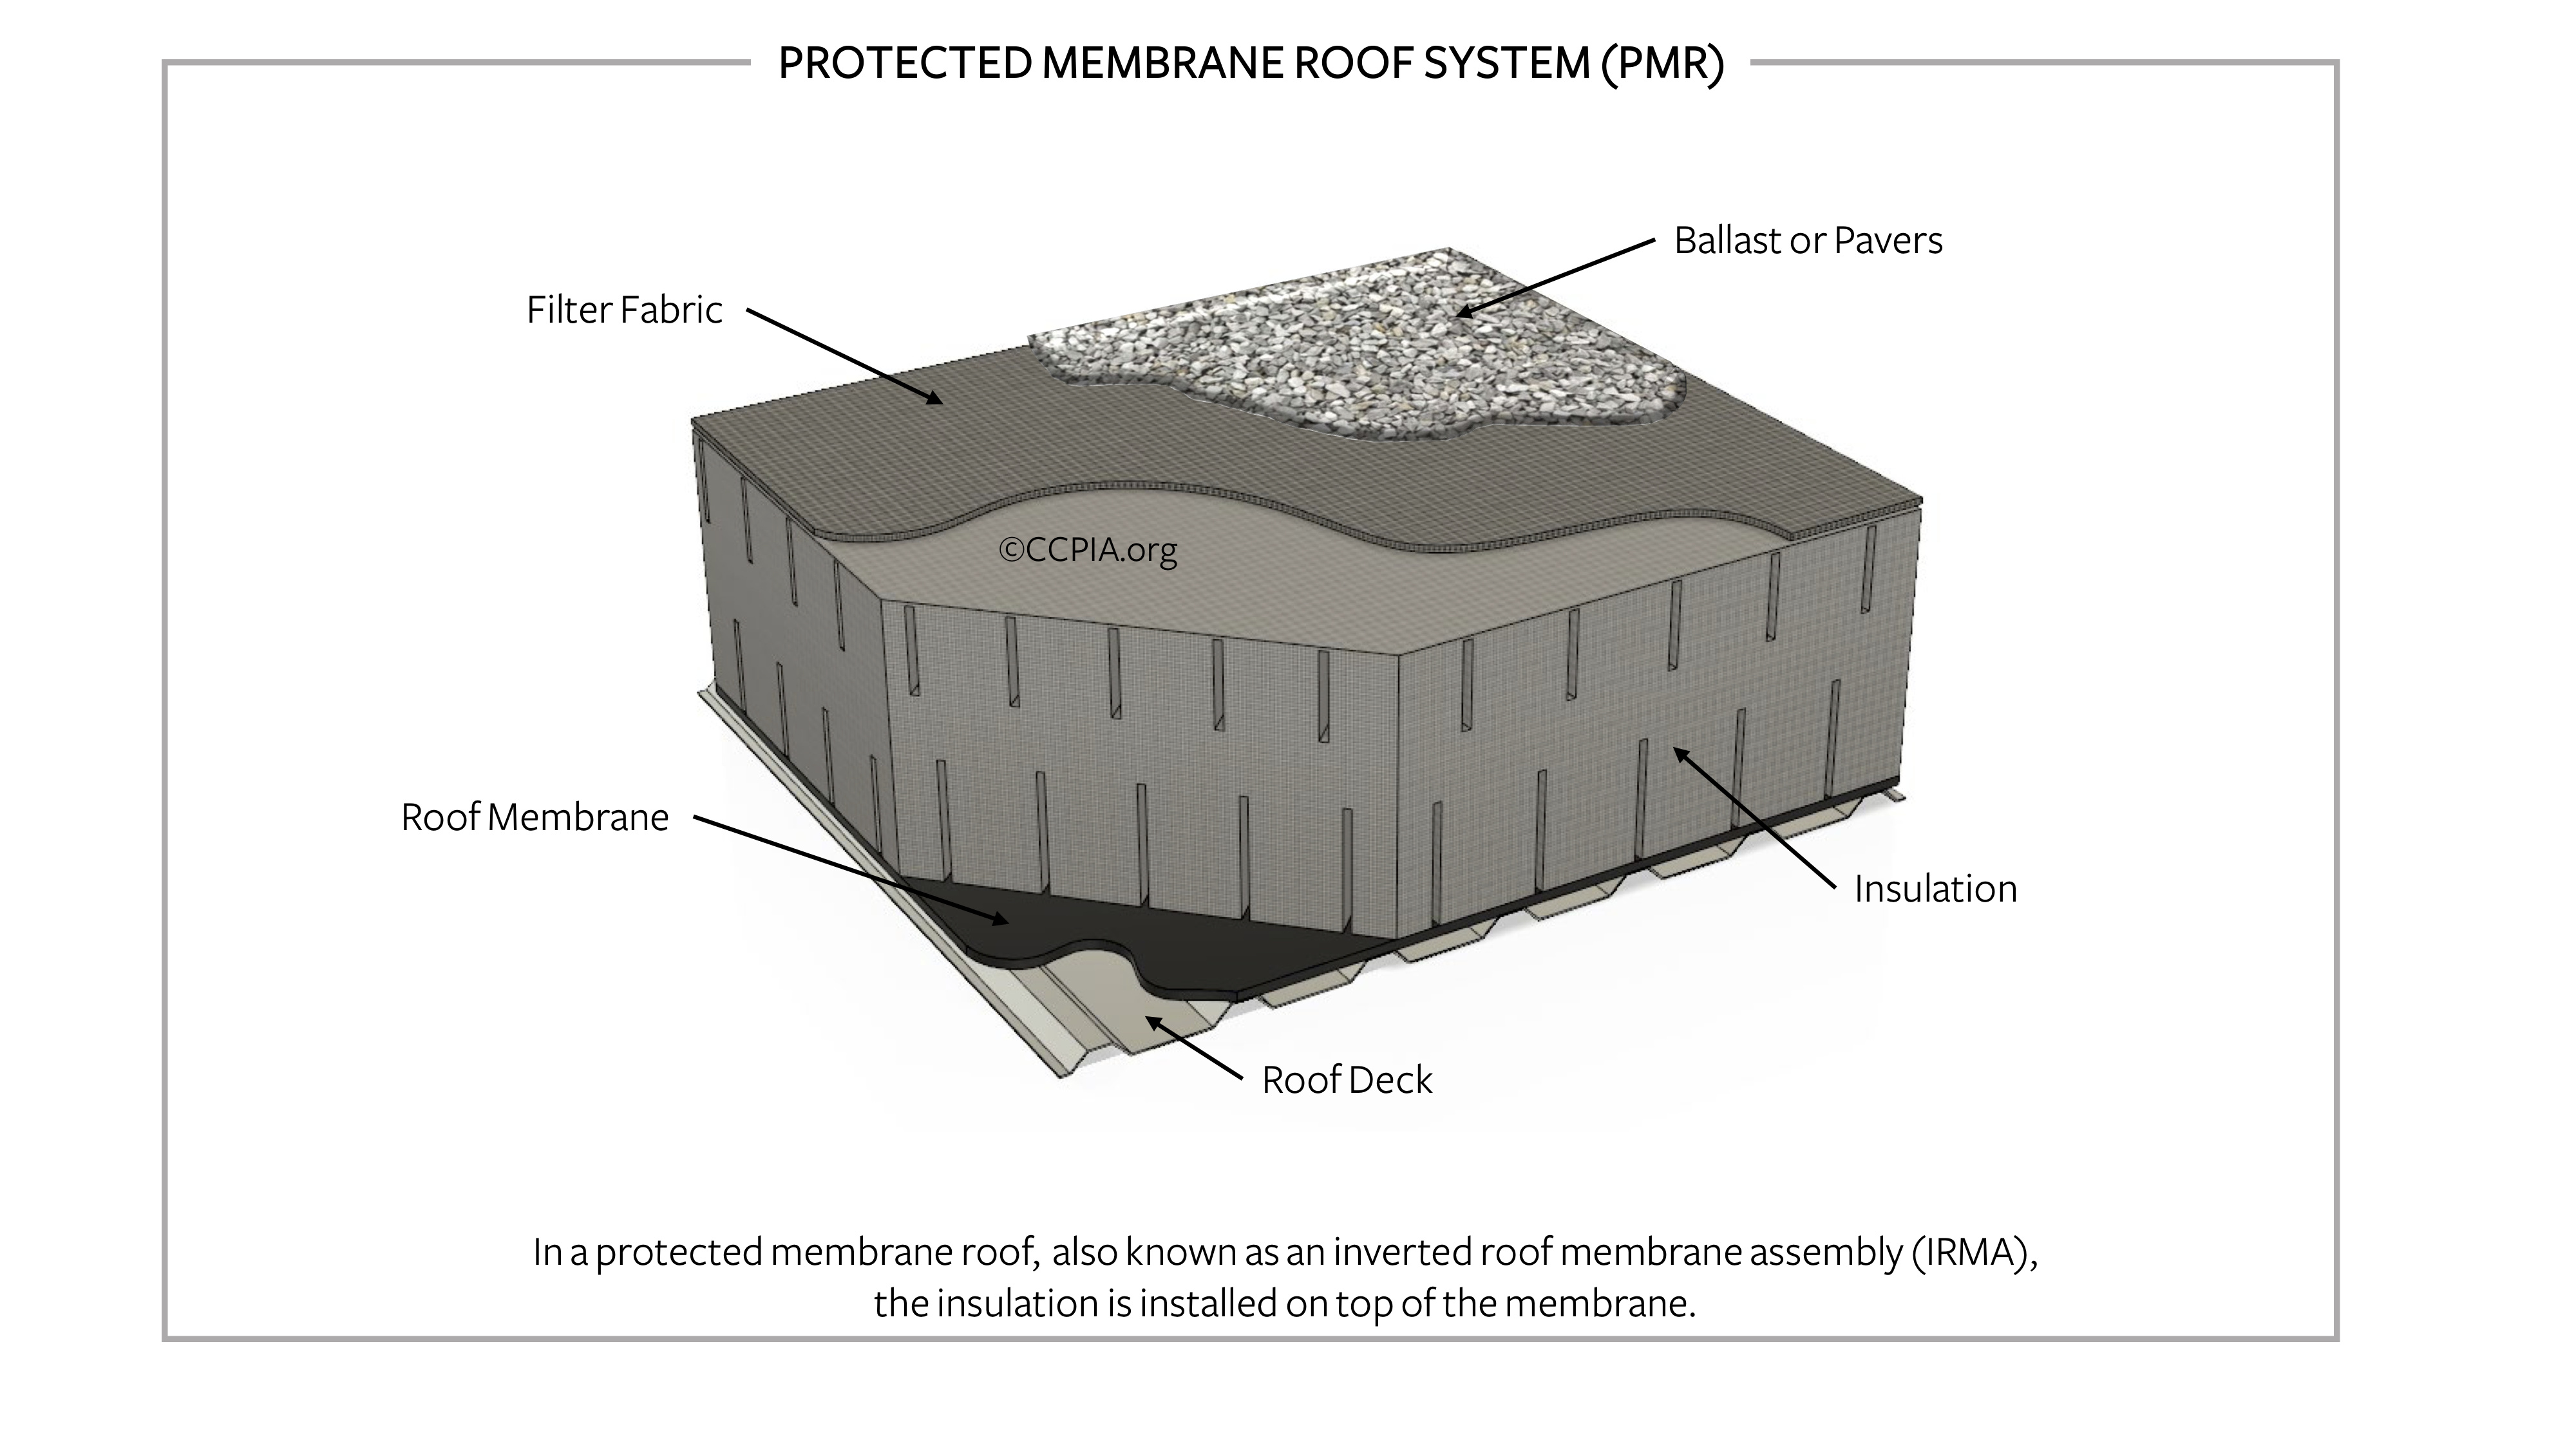 Protected-membrane roof system (PMR).